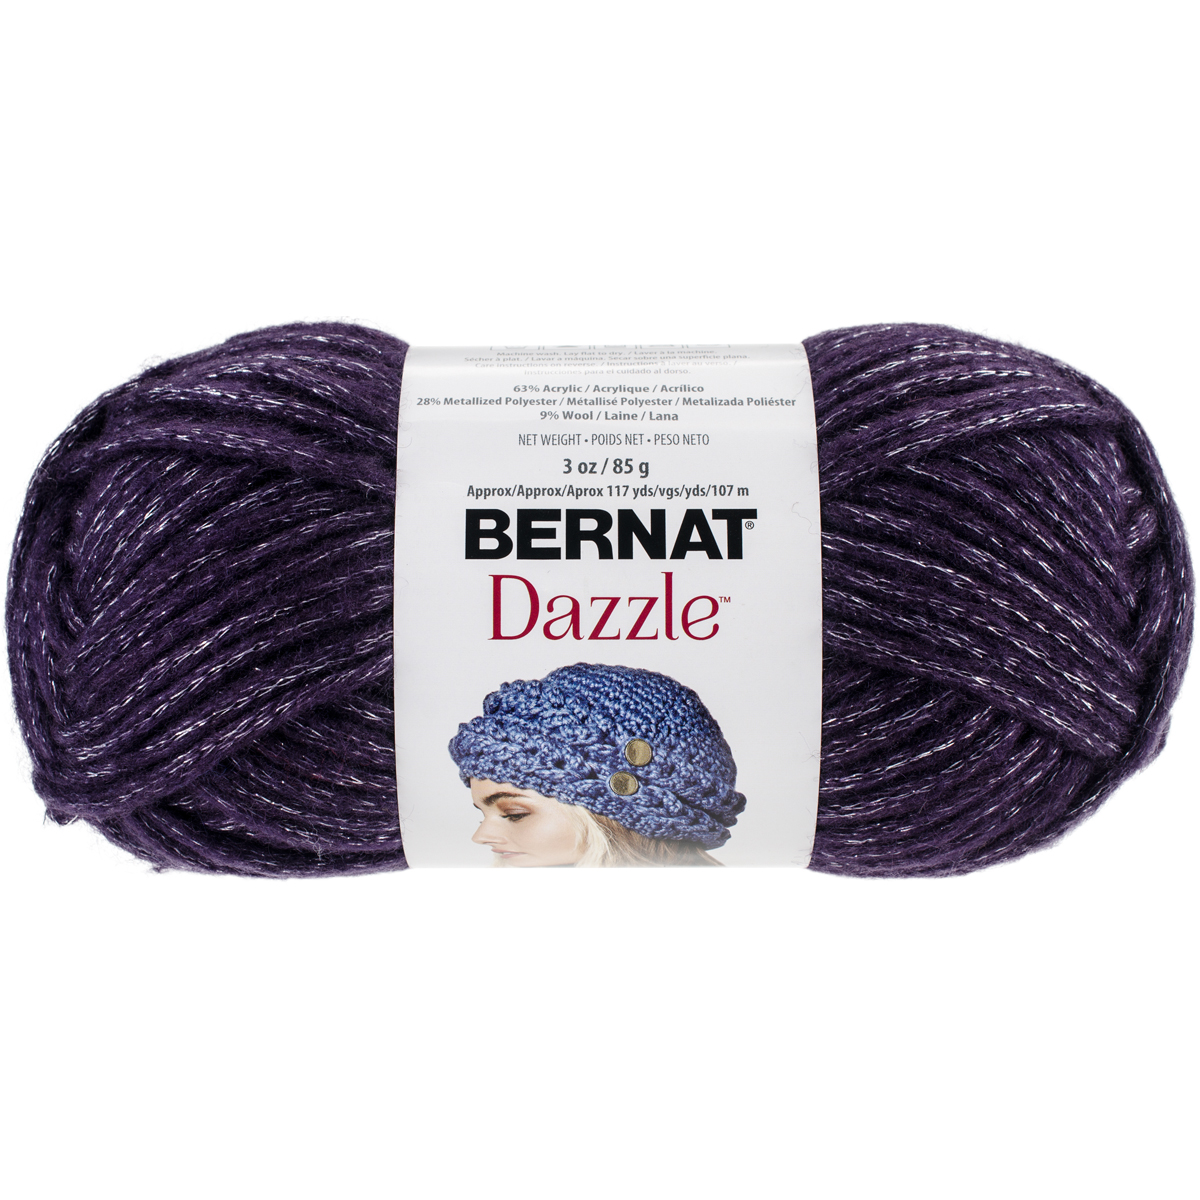 Dazzle Yarn, Purple Passion